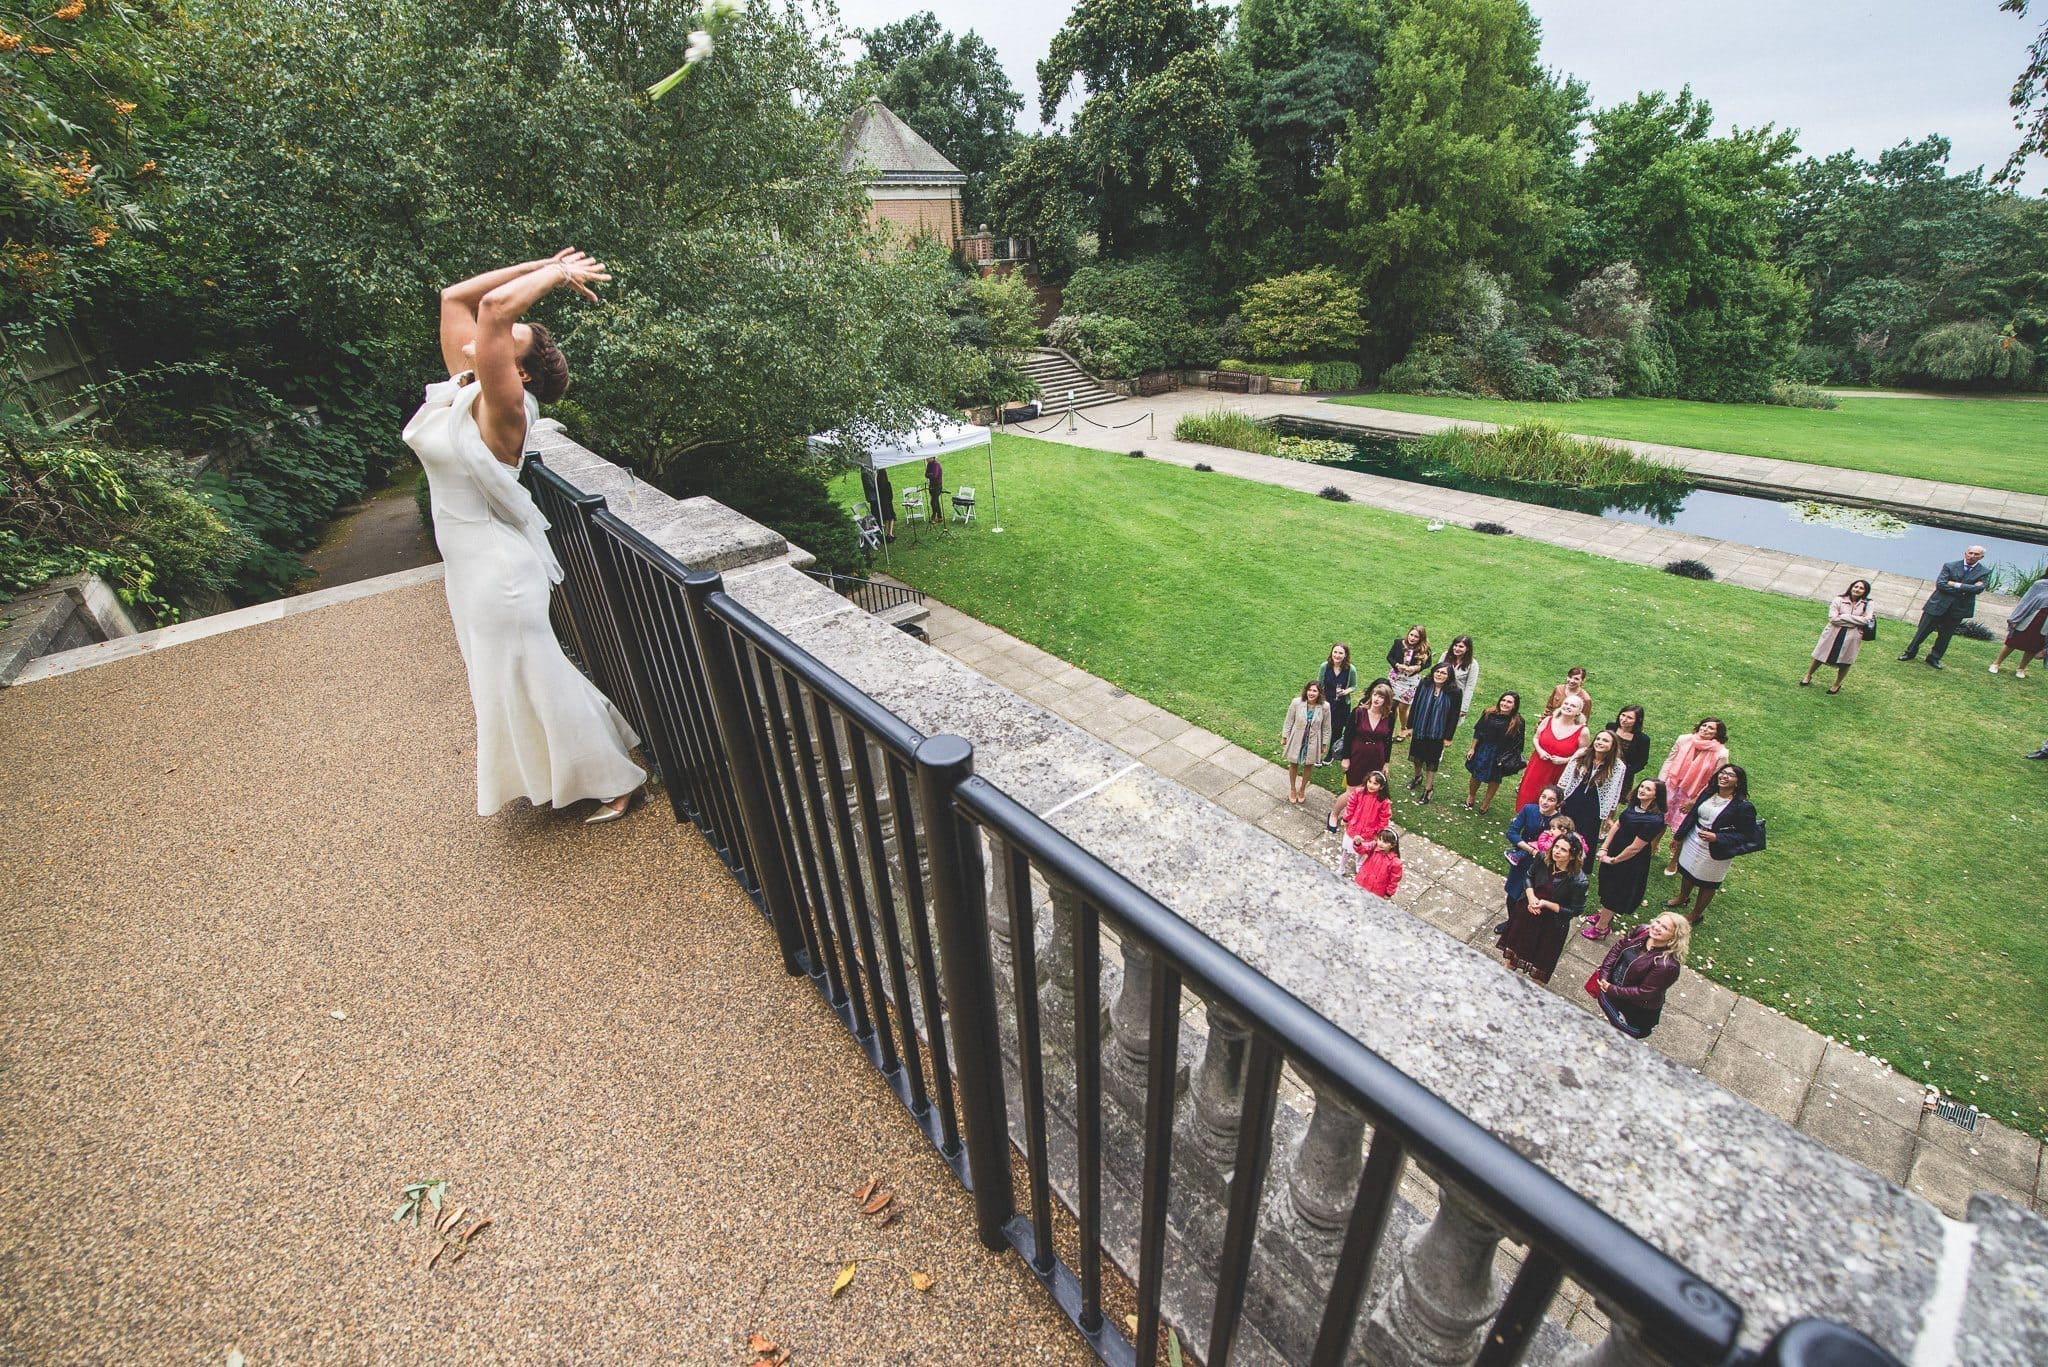 Ilaria throws her bouquet from a veranda at the Hampstead Heath pergola